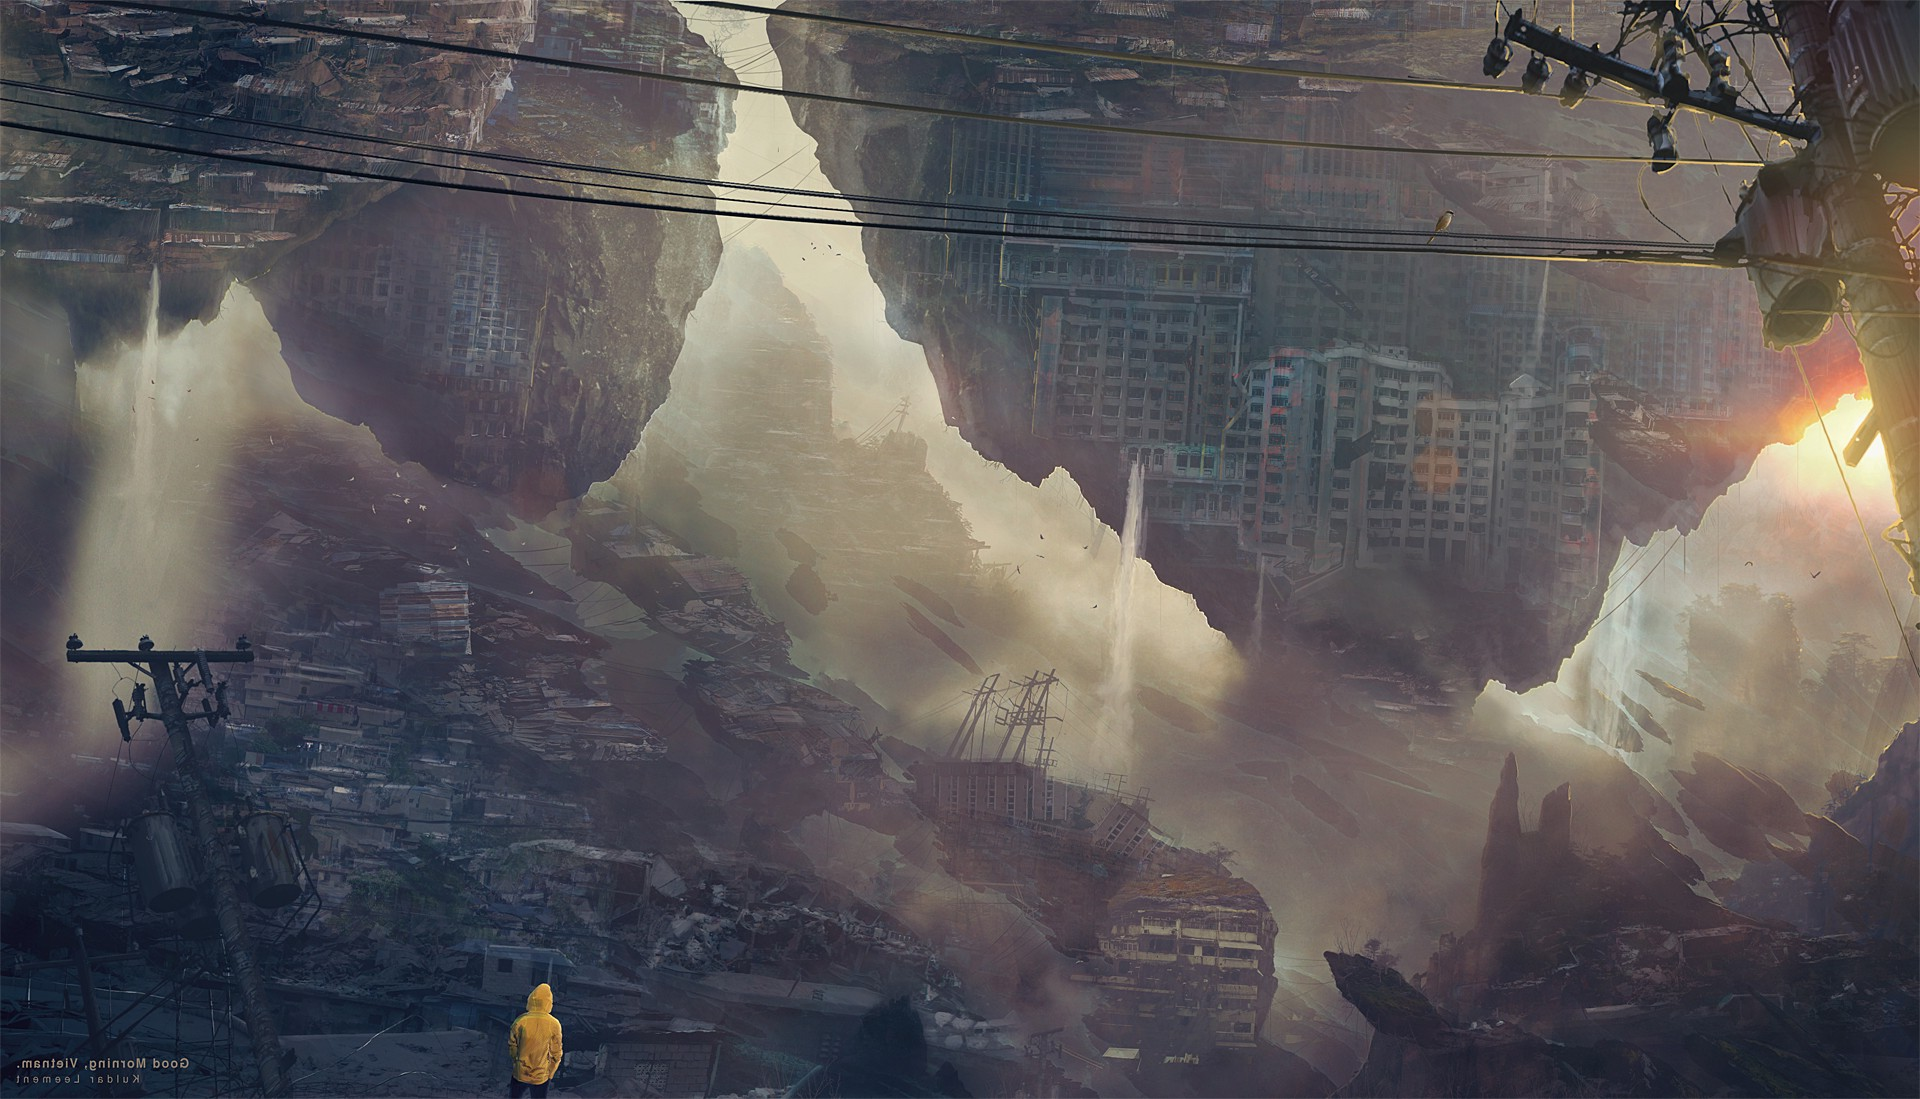 3d Wallpaper Ship Artwork Apocalyptic Cityscape Morning Anime Kuldar